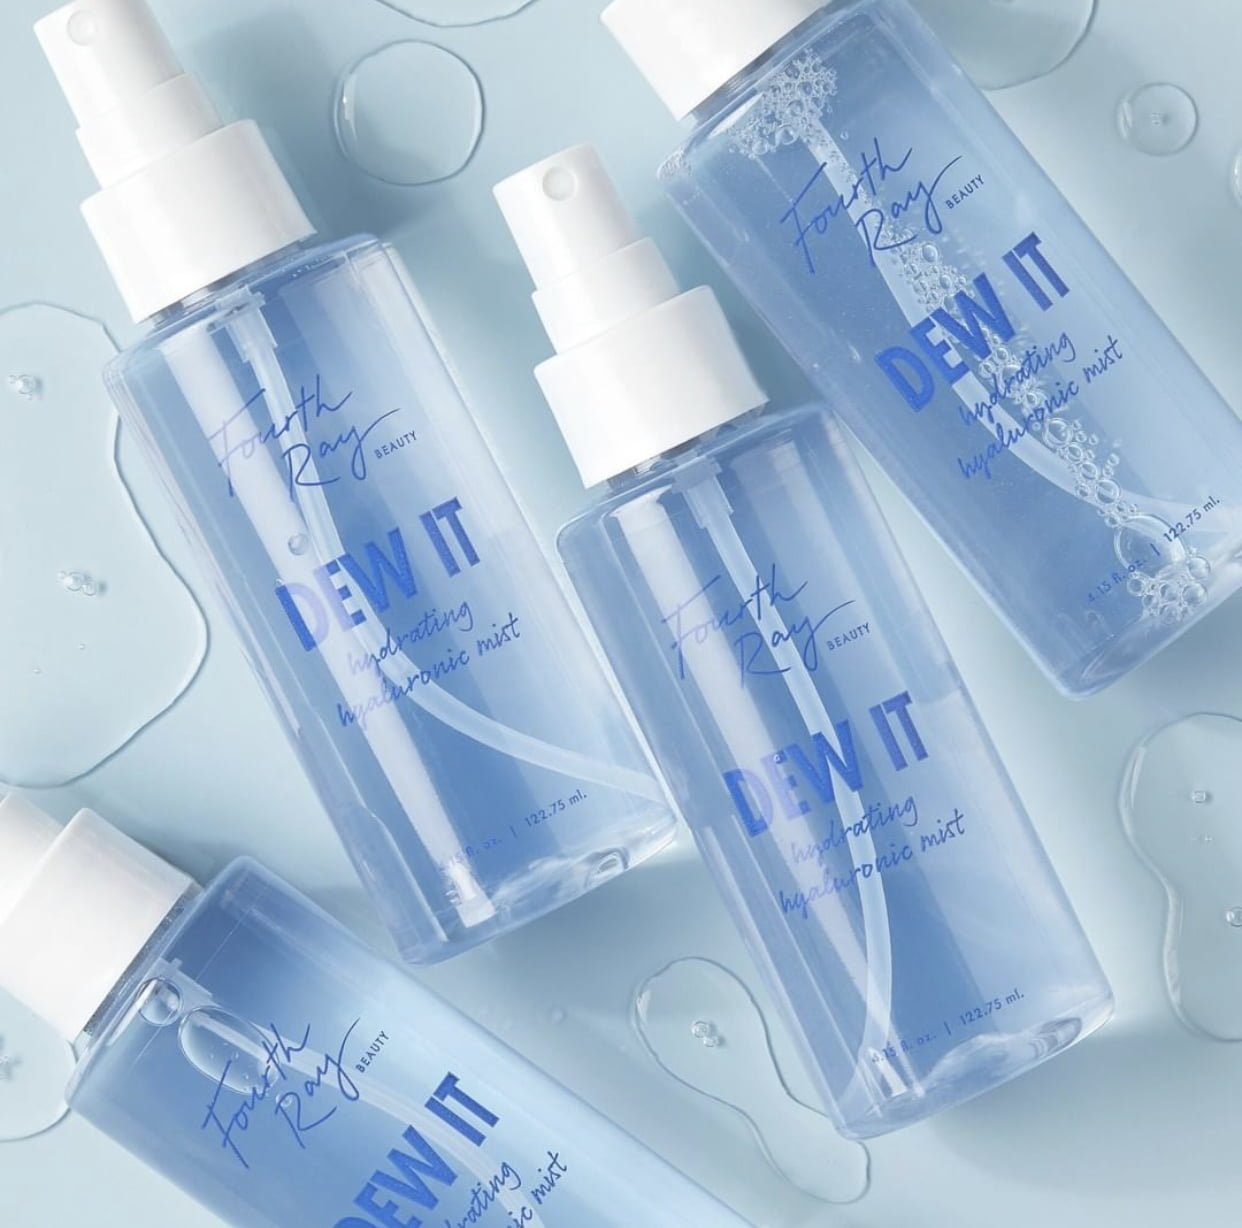 Fourth Ray Beauty Dew It Hydrating Hyaluronic Face Mist